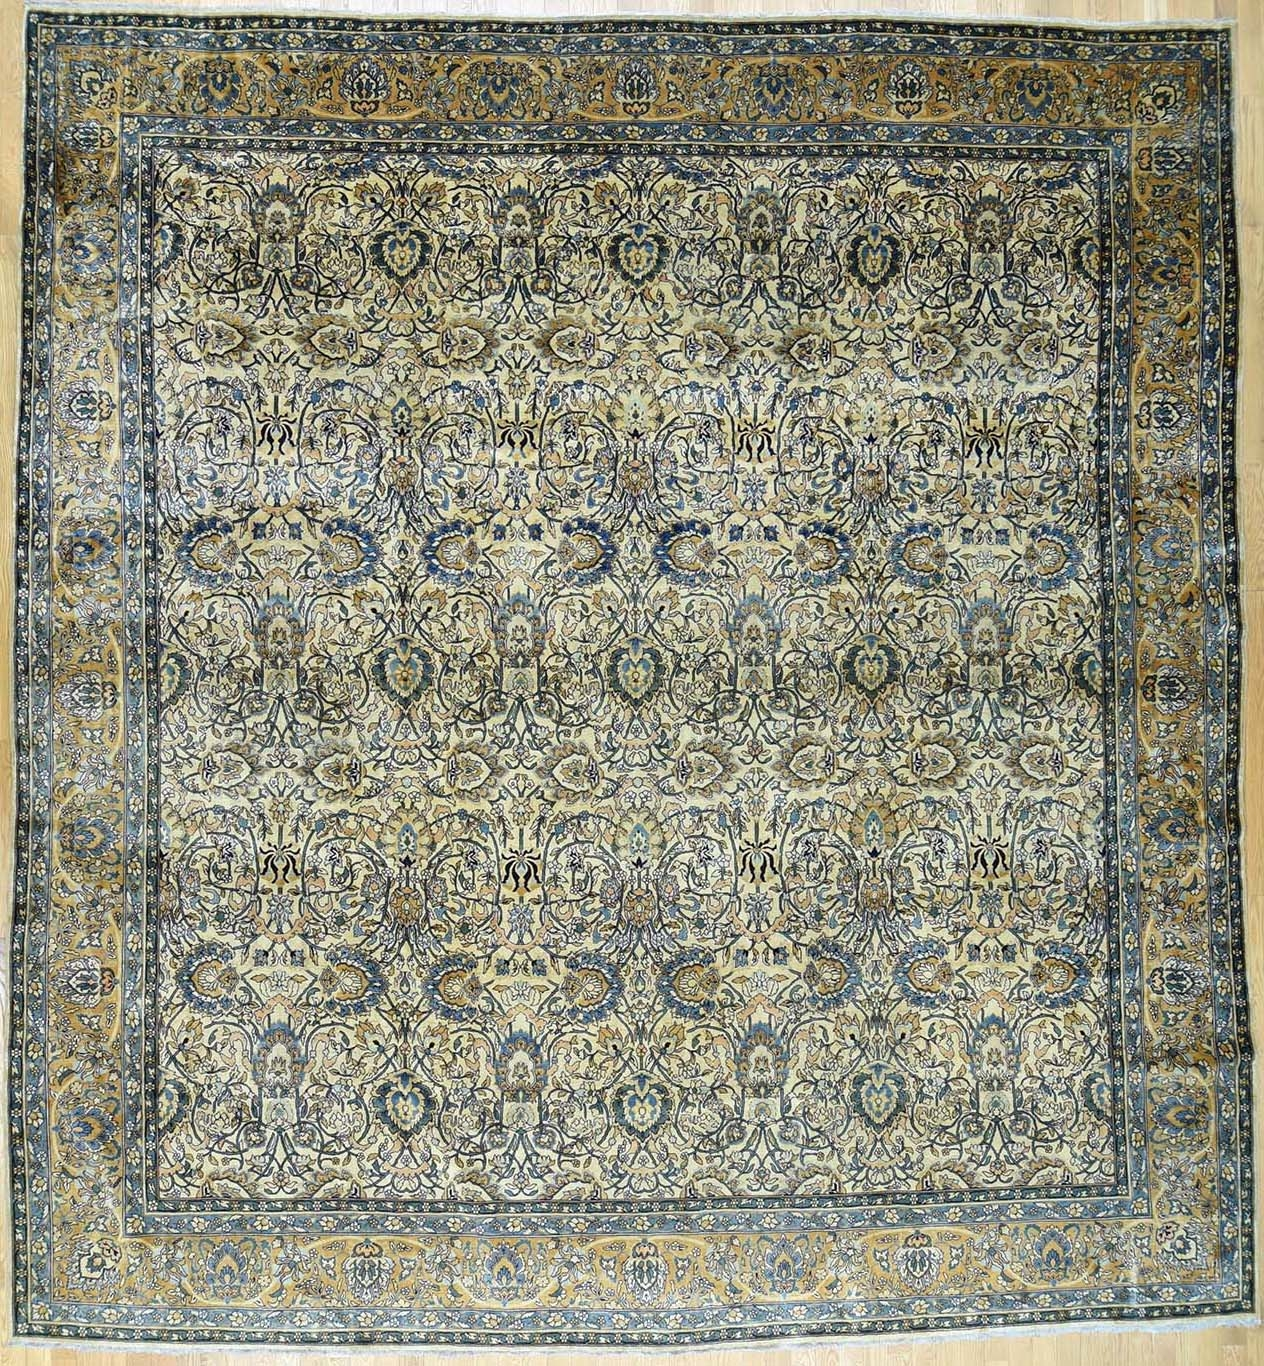 Buy Authentic Hand Knotted Persian Rugs 5000 And Up From Oldcarpet For Green Persian Rugs (Image 7 of 15)